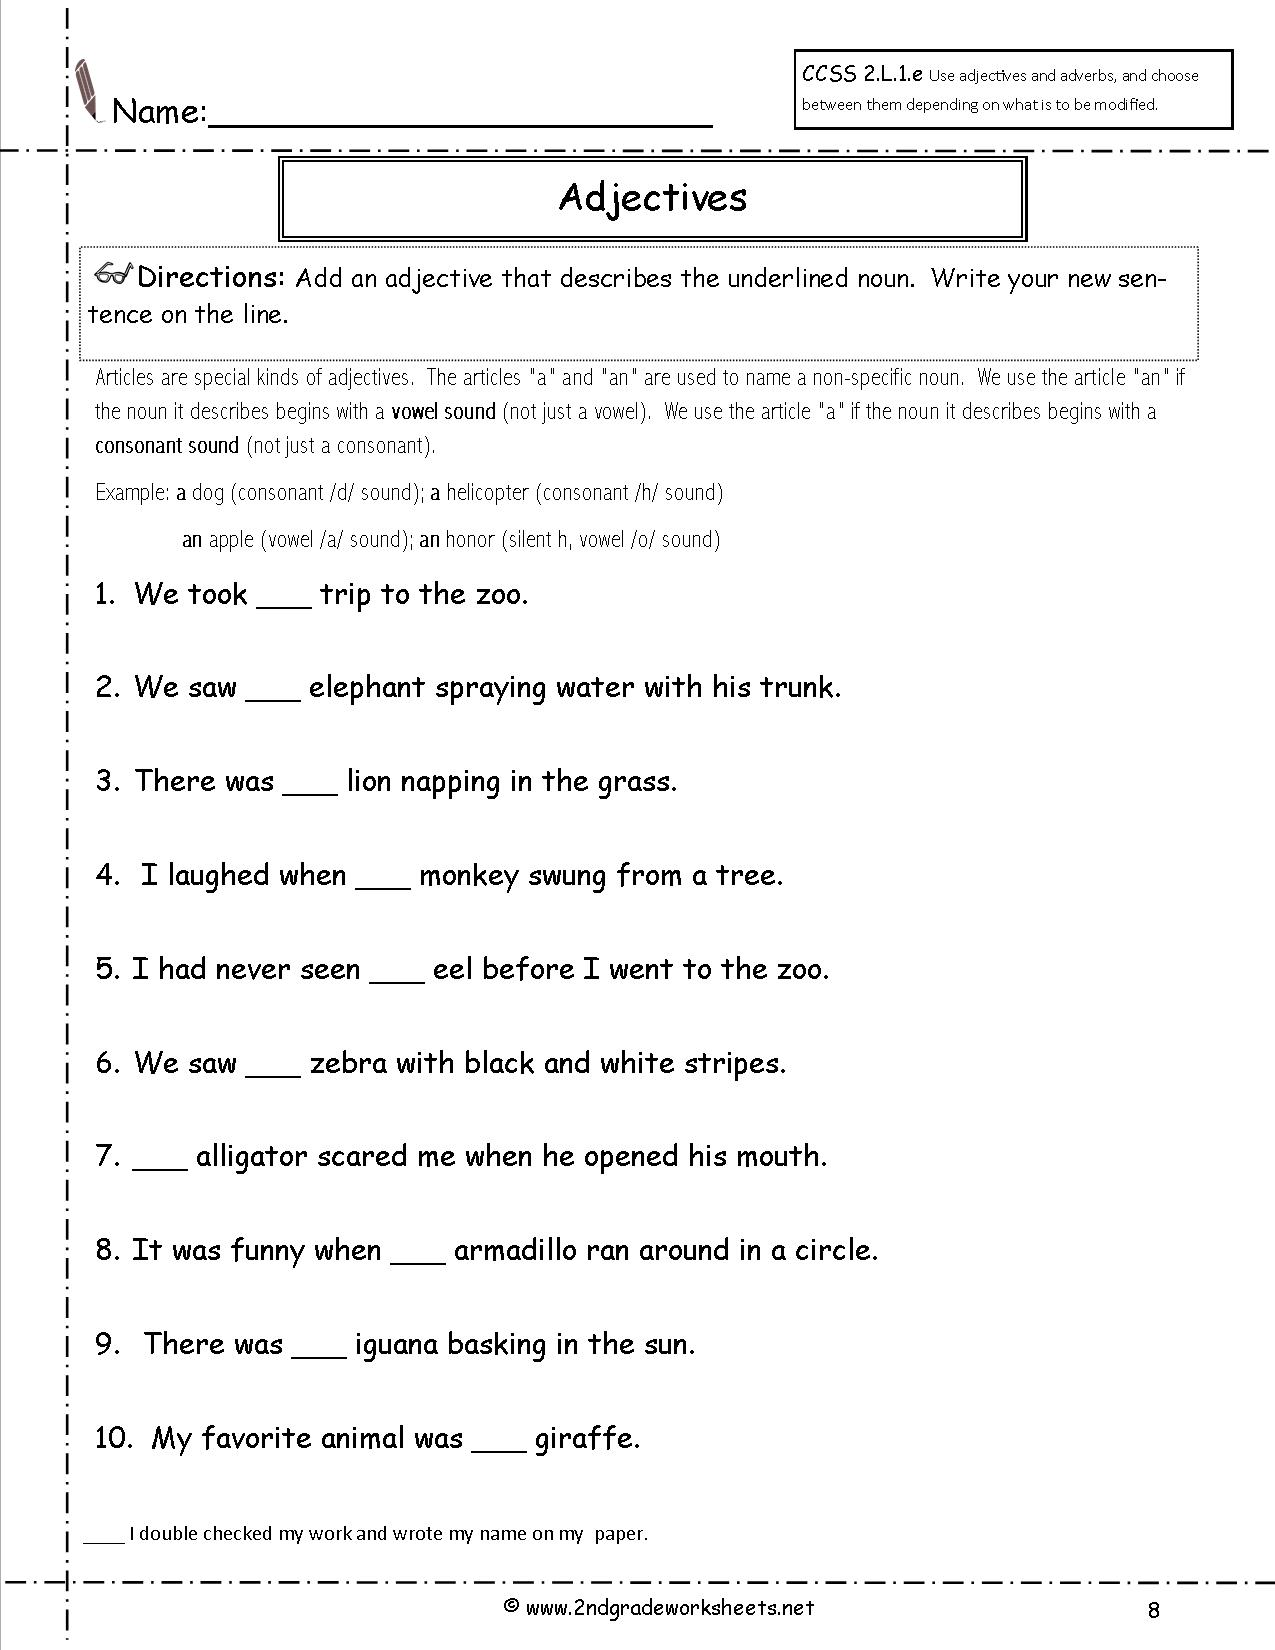 Worksheets Free 3rd Grade Grammar Worksheets free 3rd grade grammar worksheets english for 4th 3 create